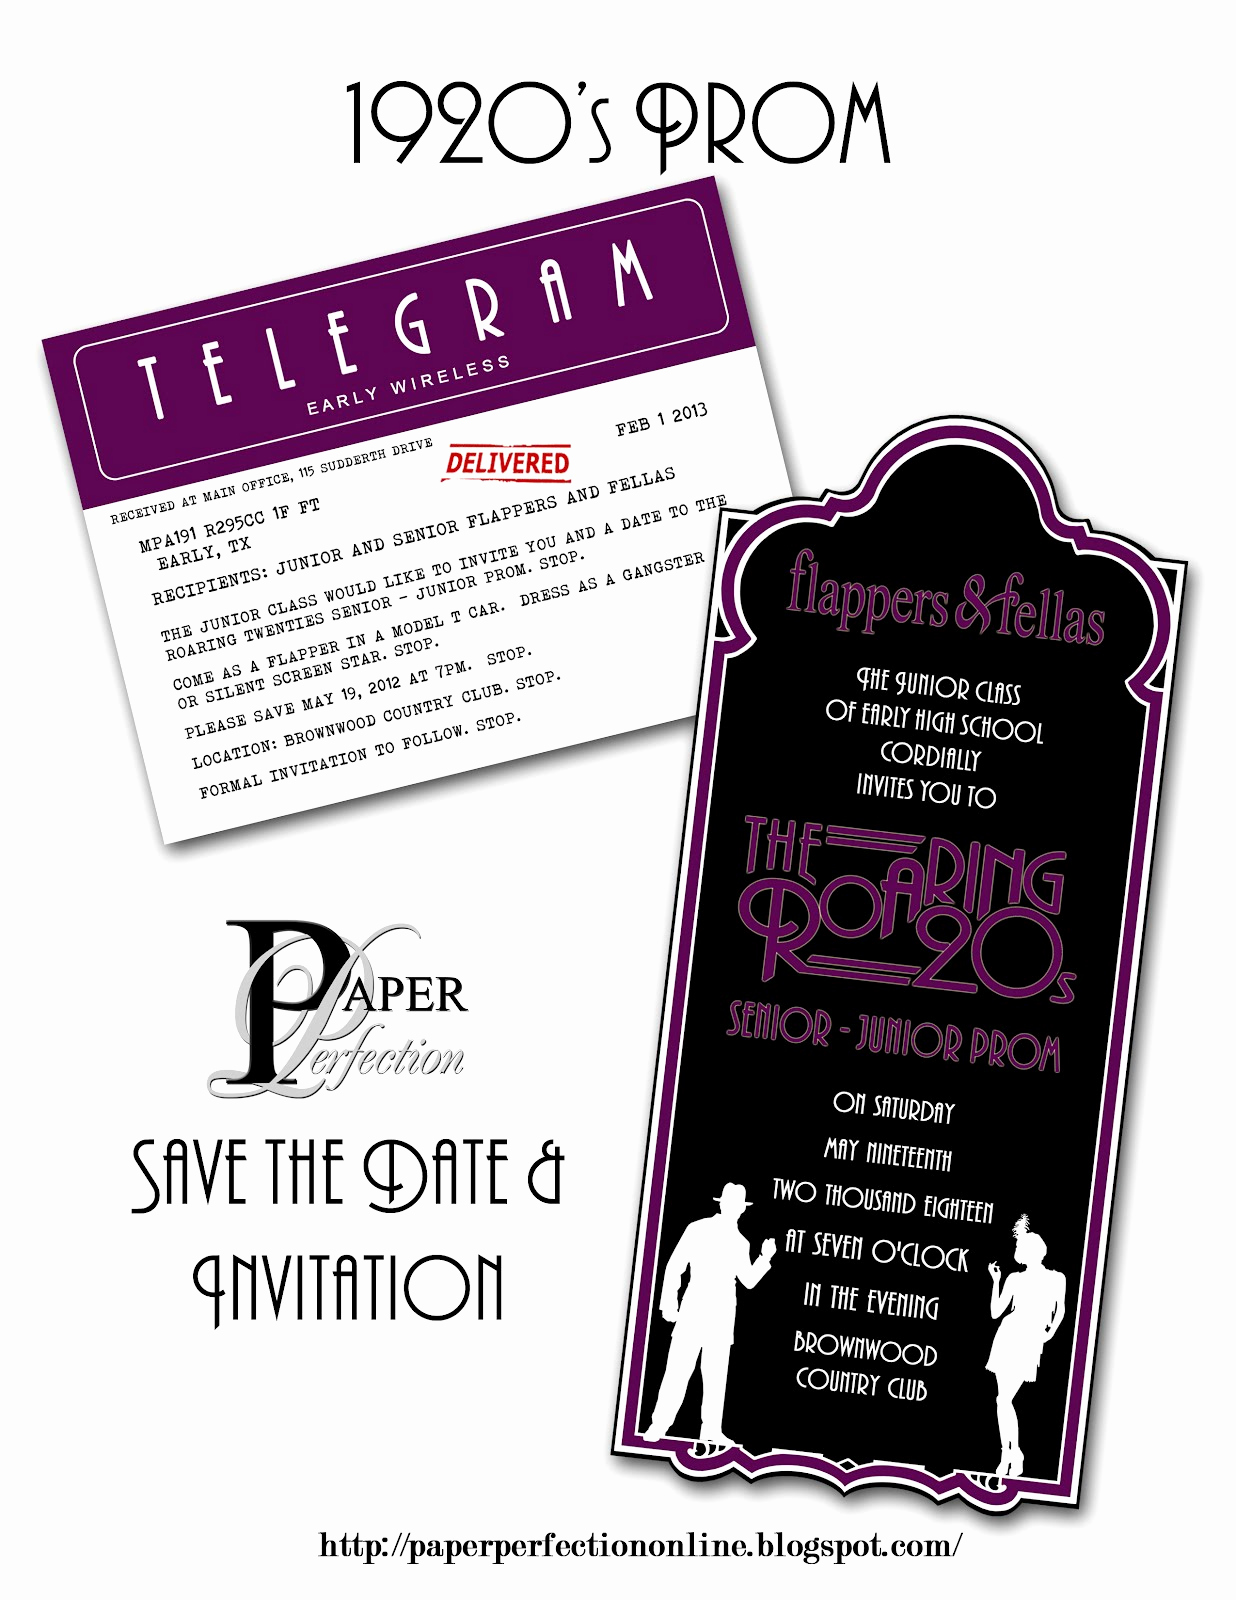 1920s Party Invitation Template Free Fresh Paper Perfection 1920 S Prom Invitation and Party Printables